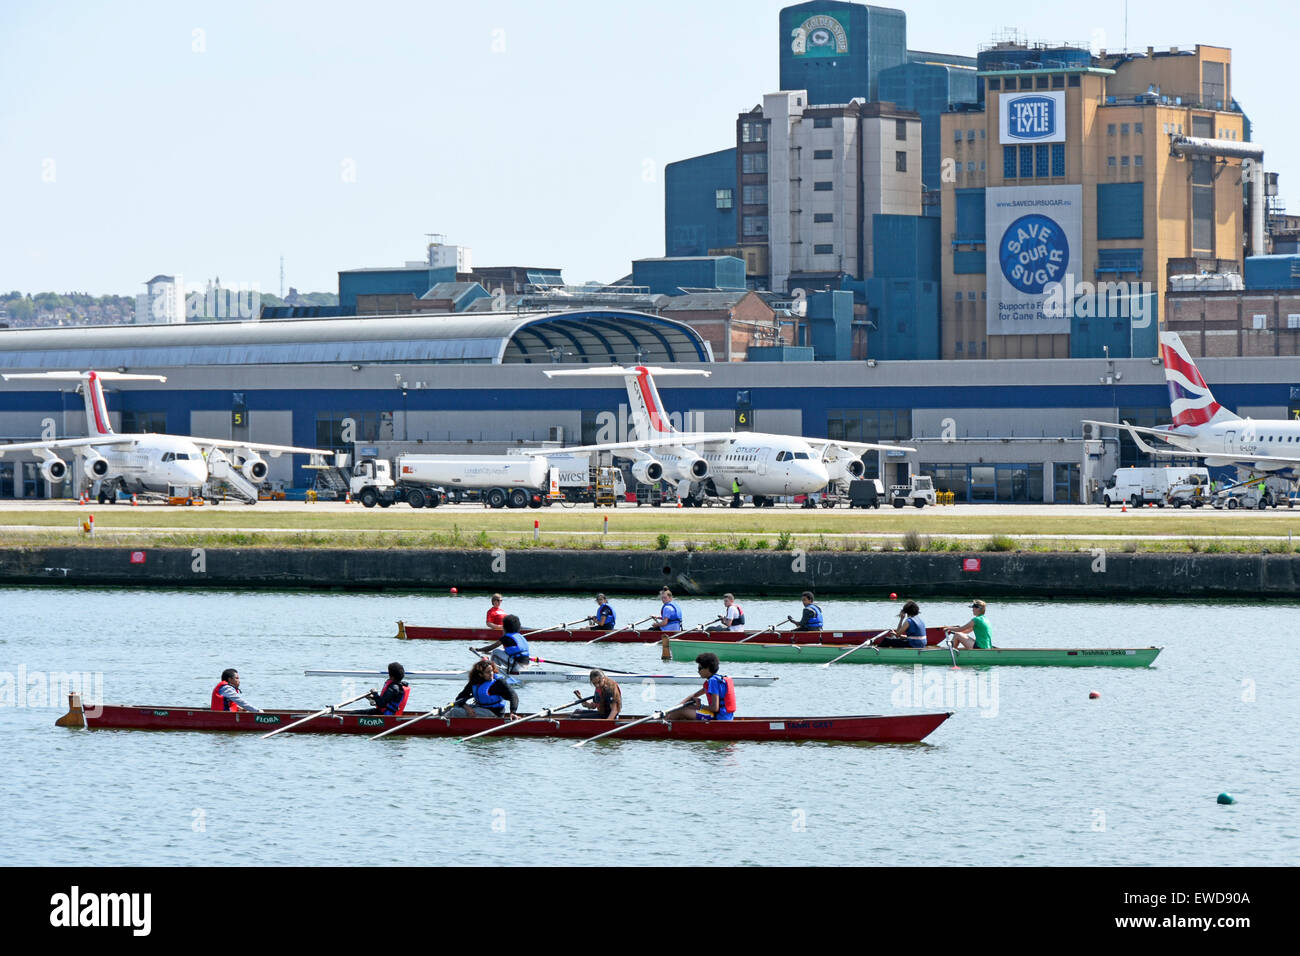 Airplane at London City Airport rowers training in old Royal Docks next to runway London Docklands Newham England Stock Photo